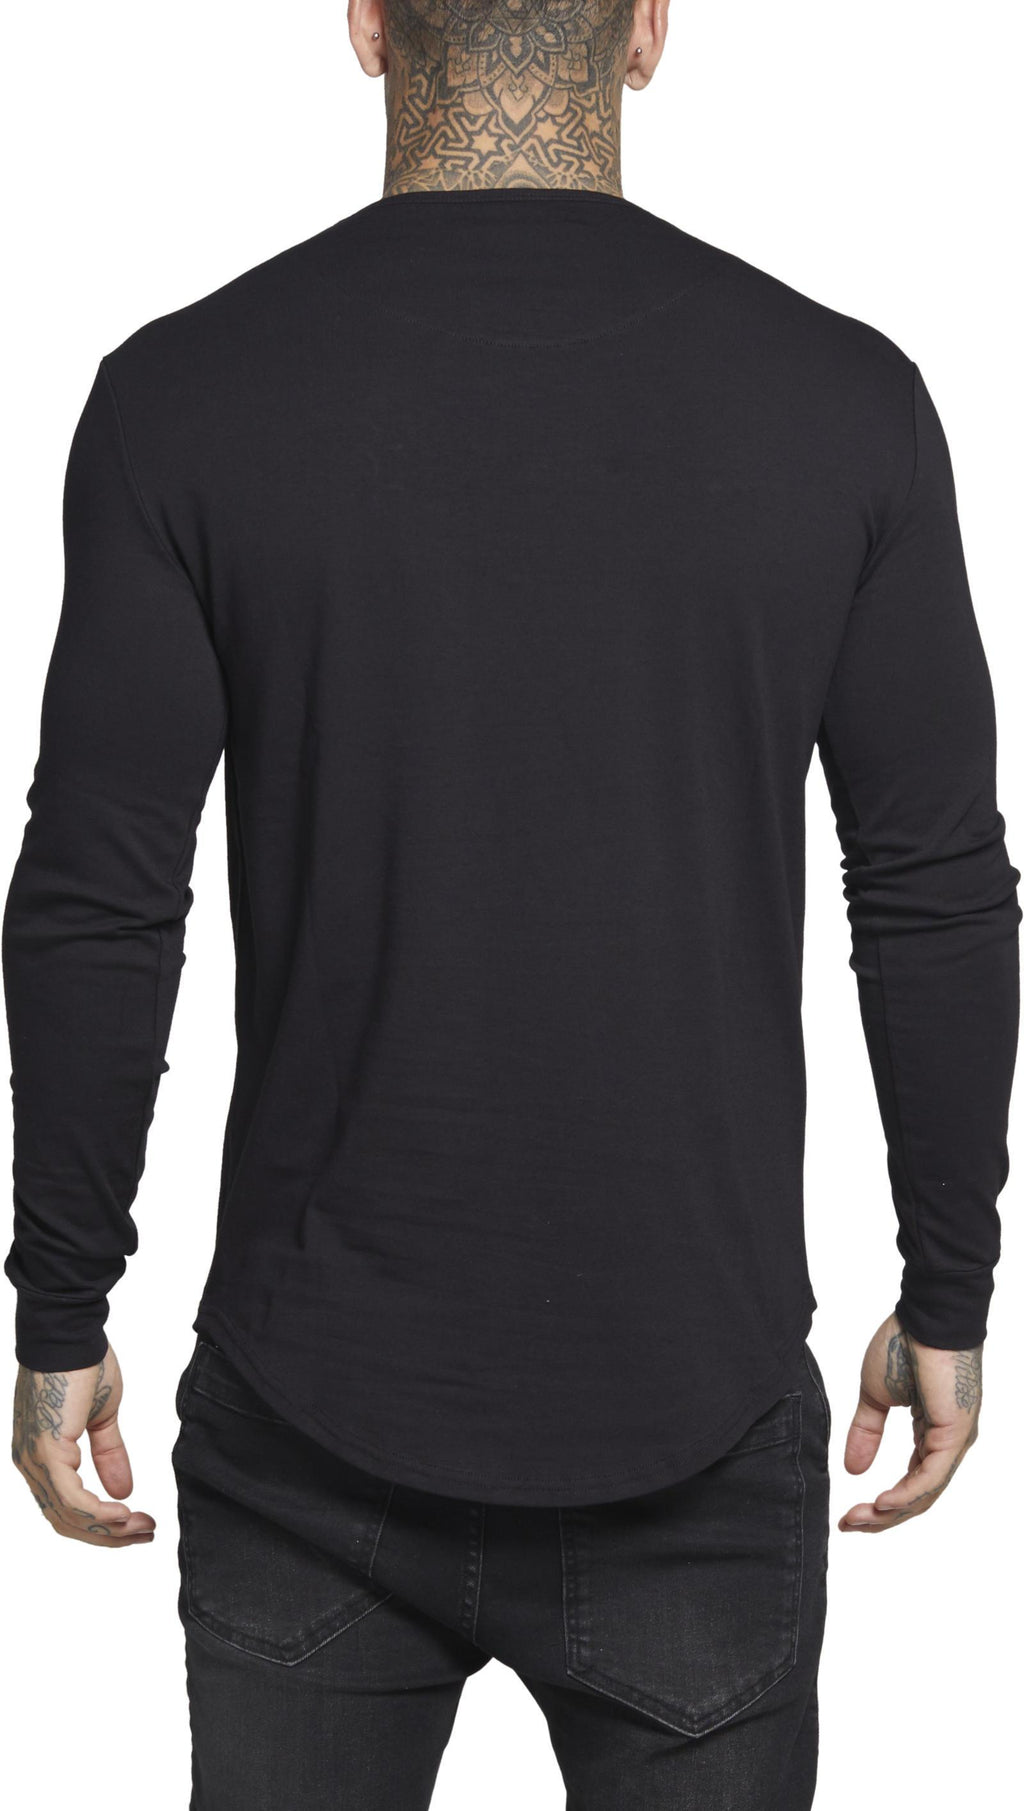 Sik Silk Long Sleeve Gym T-Shirt Black